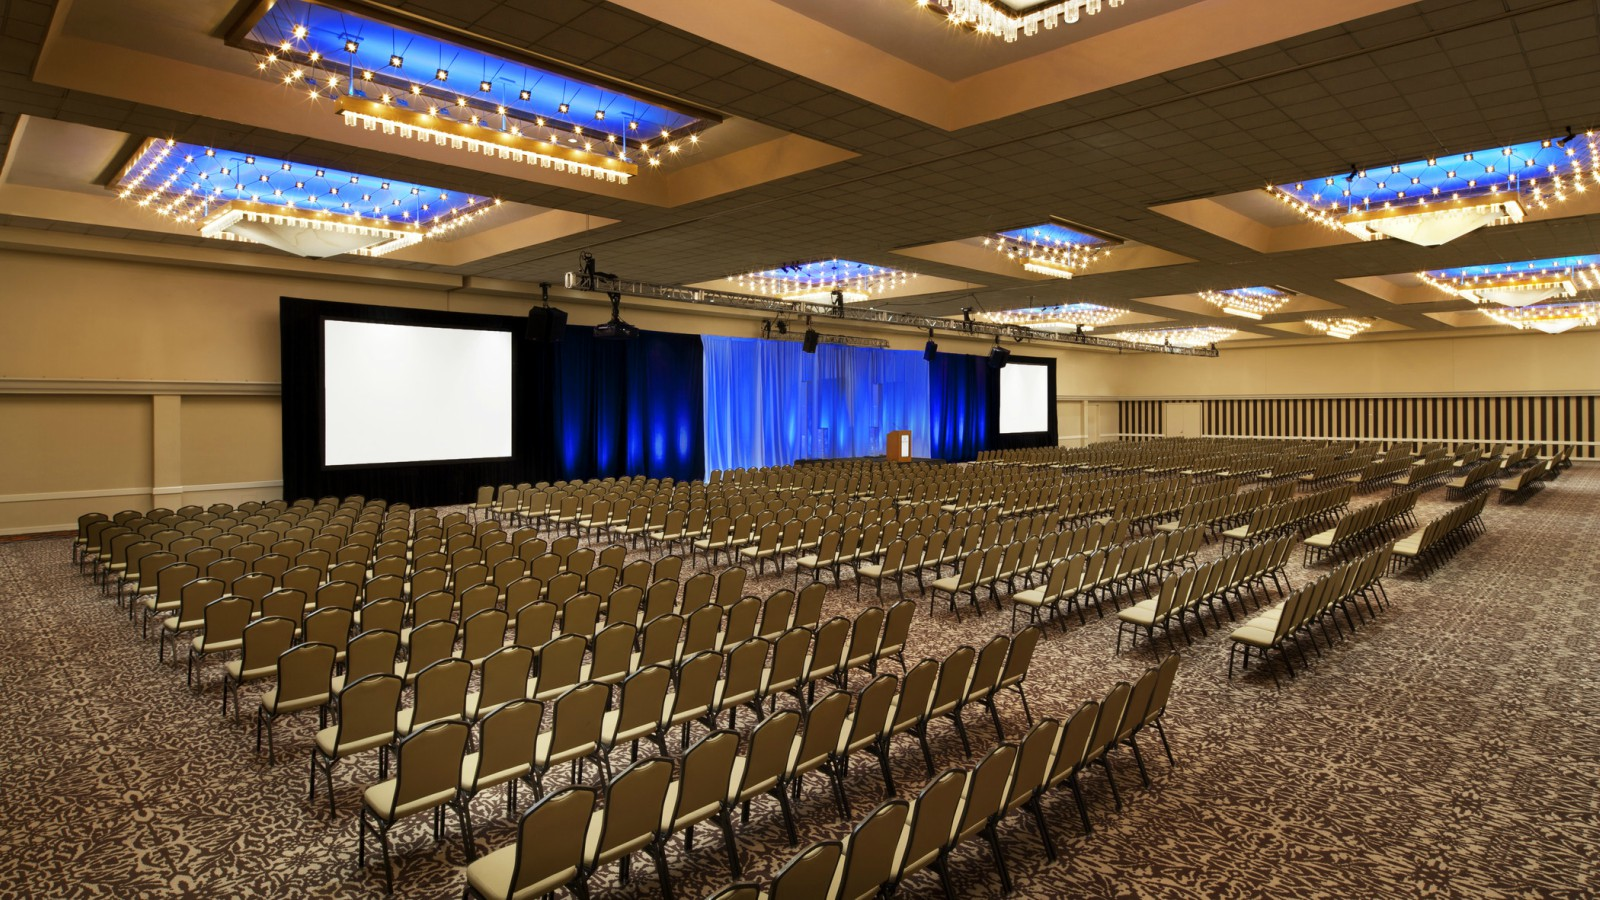 Sheraton Seattle Hotel - Grand Ballroom